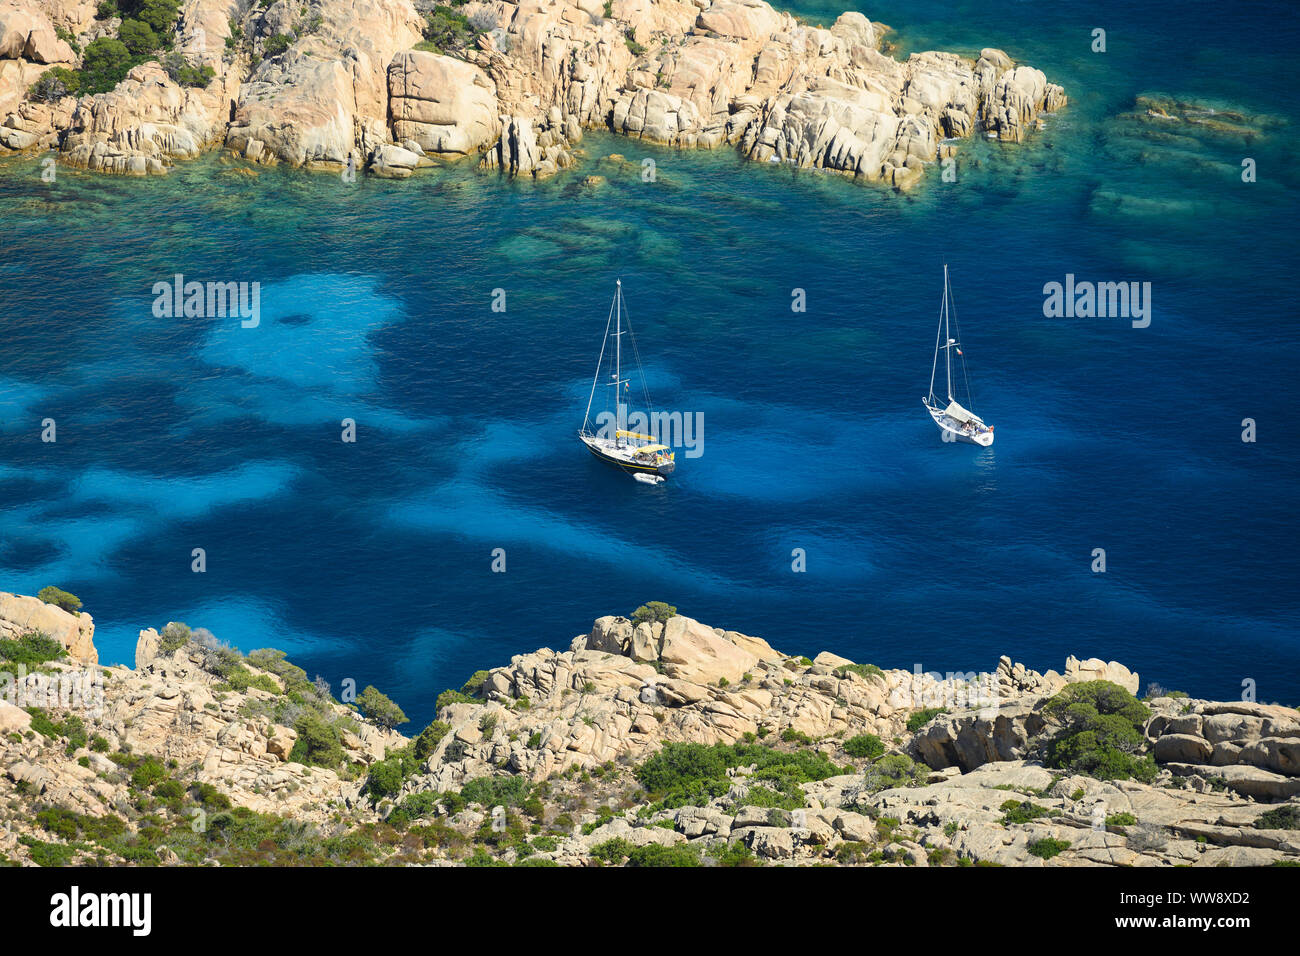 View from above, stunning aerial view of two sailboats floating on a turquoise clear water. Cala Coticcio (also known as Tahiti), Sardinia, Italy. Stock Photo